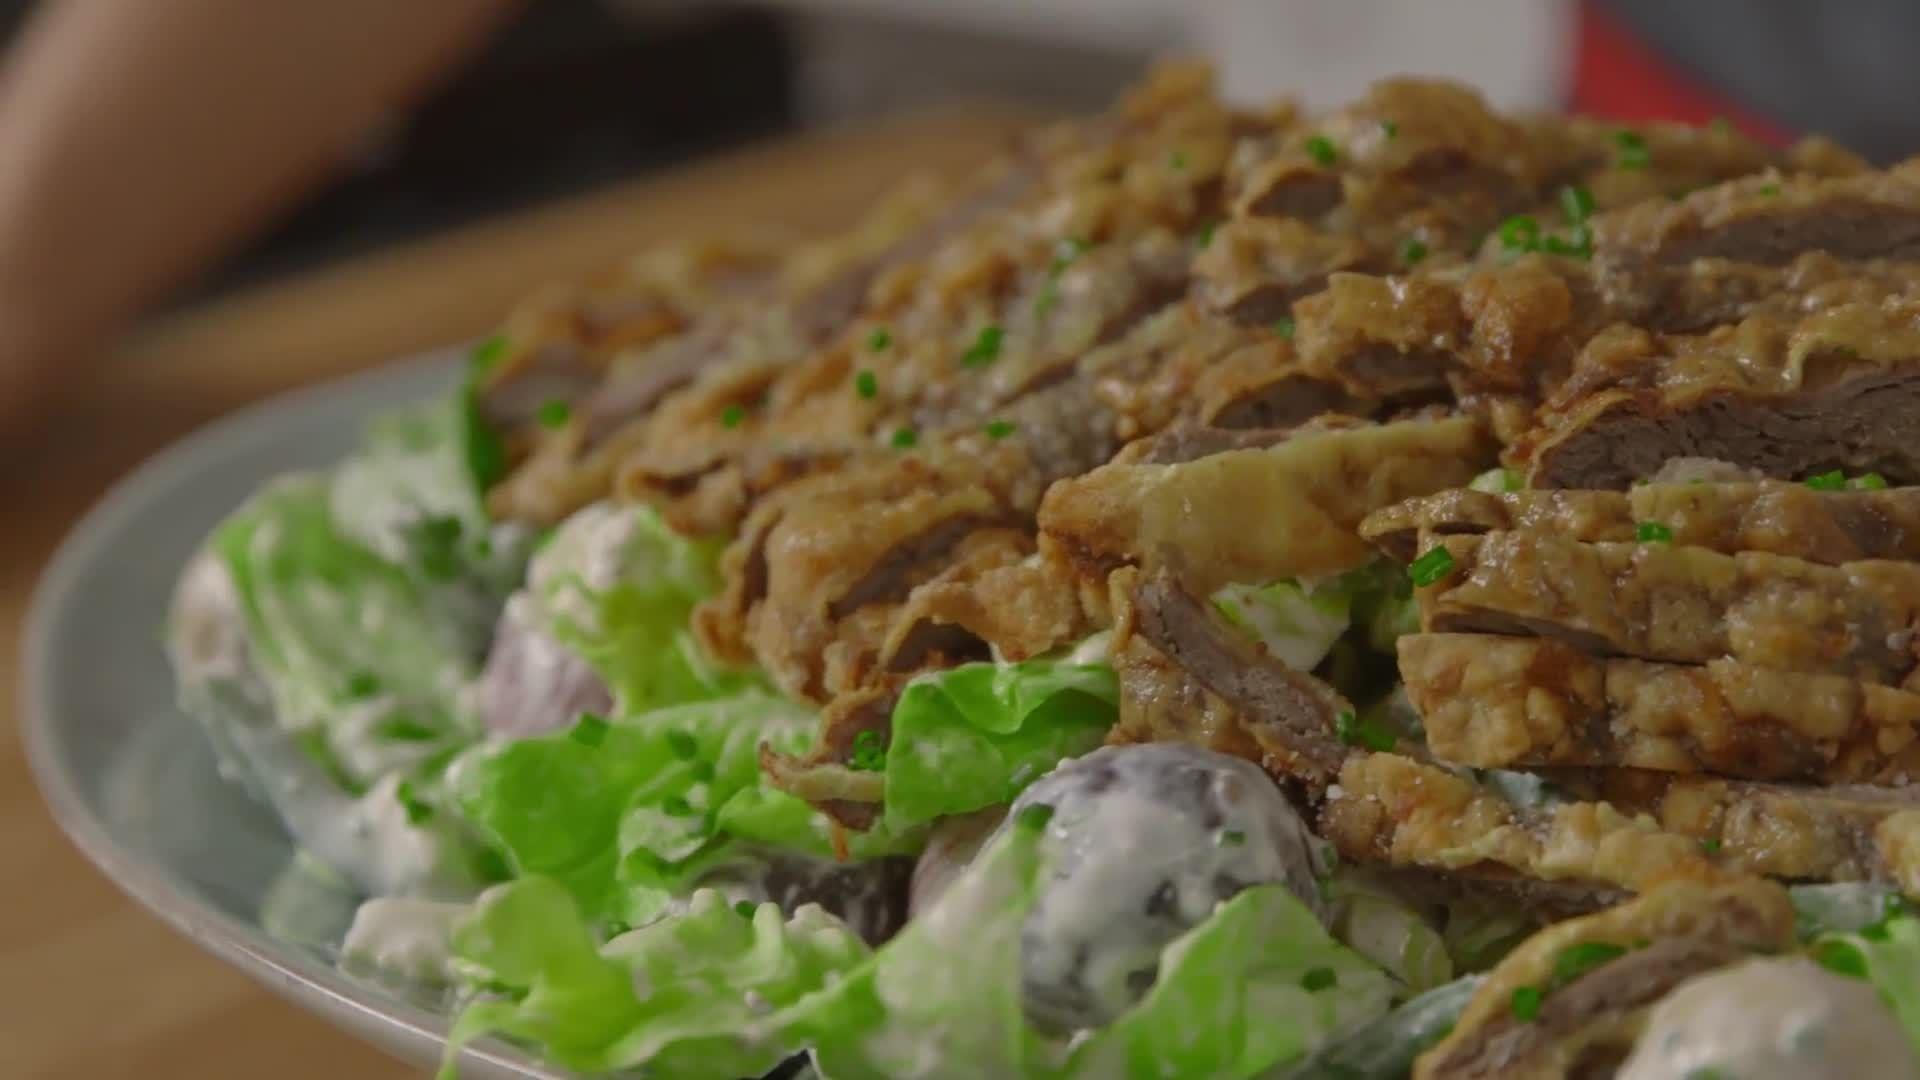 How to Make Country Fried Steak Salad